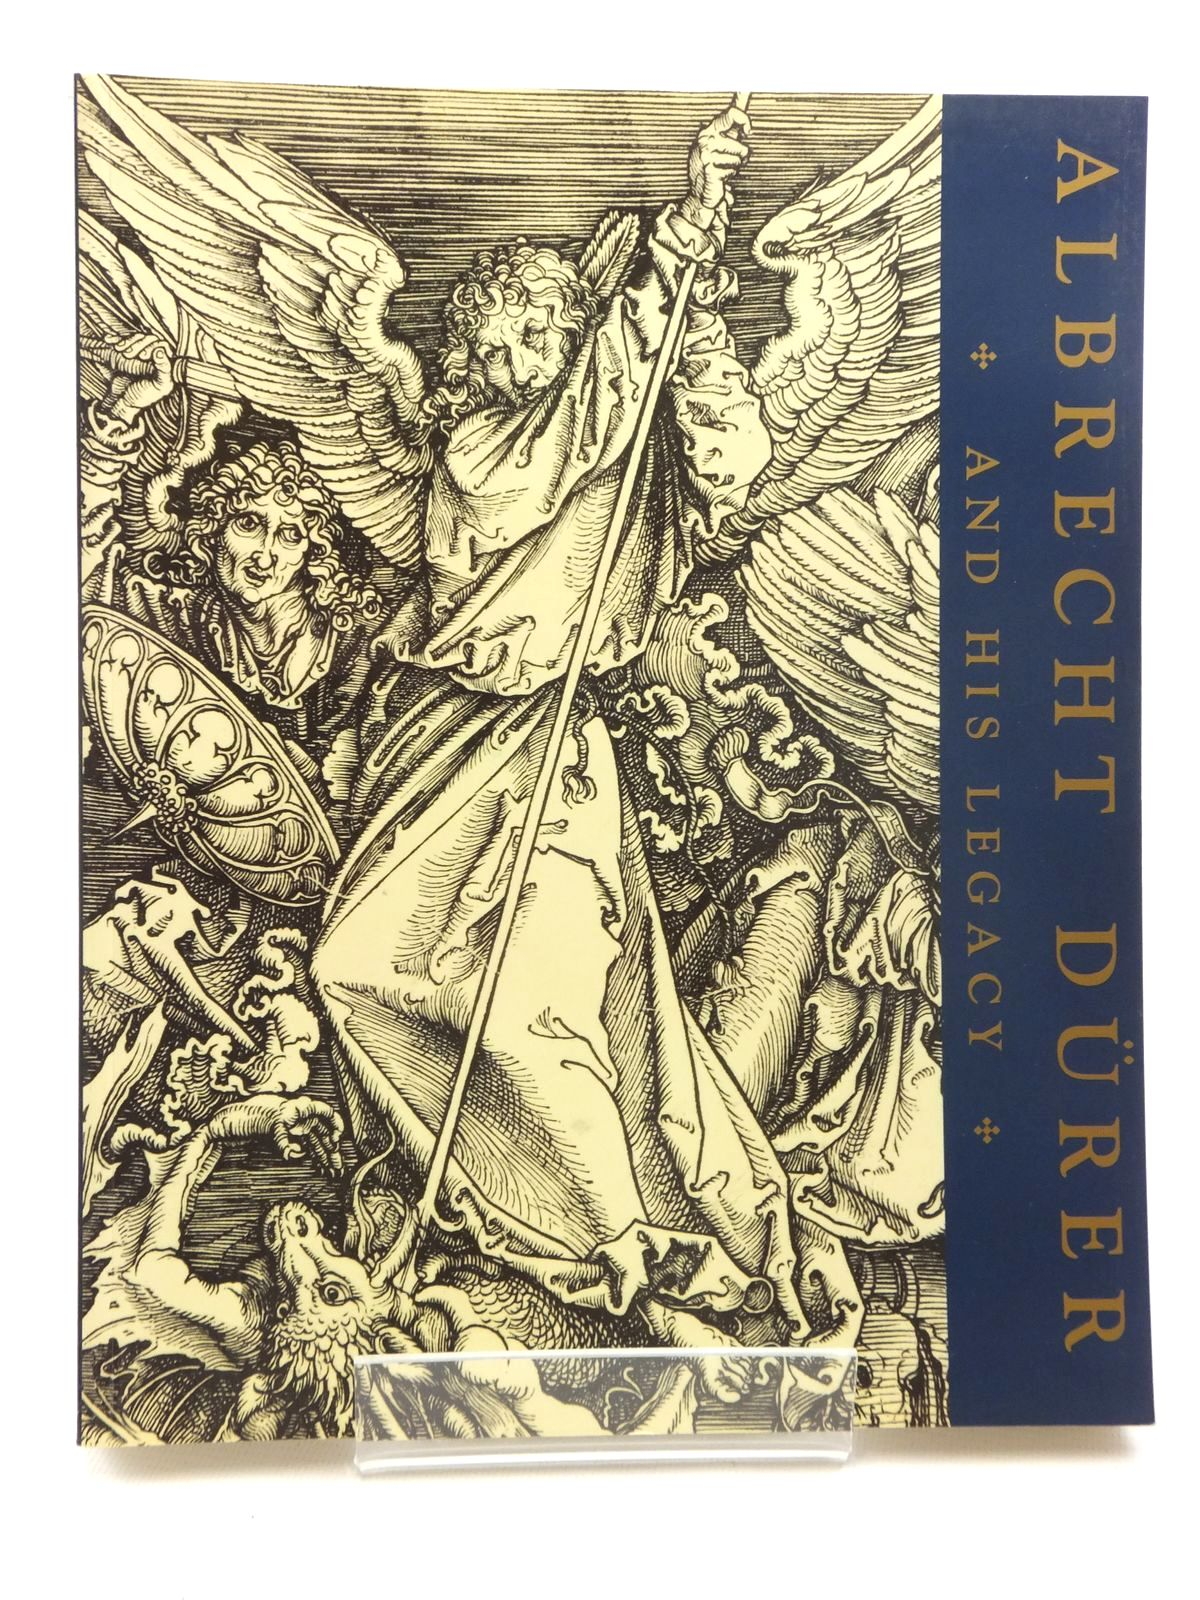 Photo of ALBRECHT DURER AND HIS LEGACY: THE GRAPHIC WORK OF A RENAISSANCE ARTIST written by Bartrum, Giulia illustrated by Durer, Albrecht published by British Museum Press (STOCK CODE: 1814979)  for sale by Stella & Rose's Books